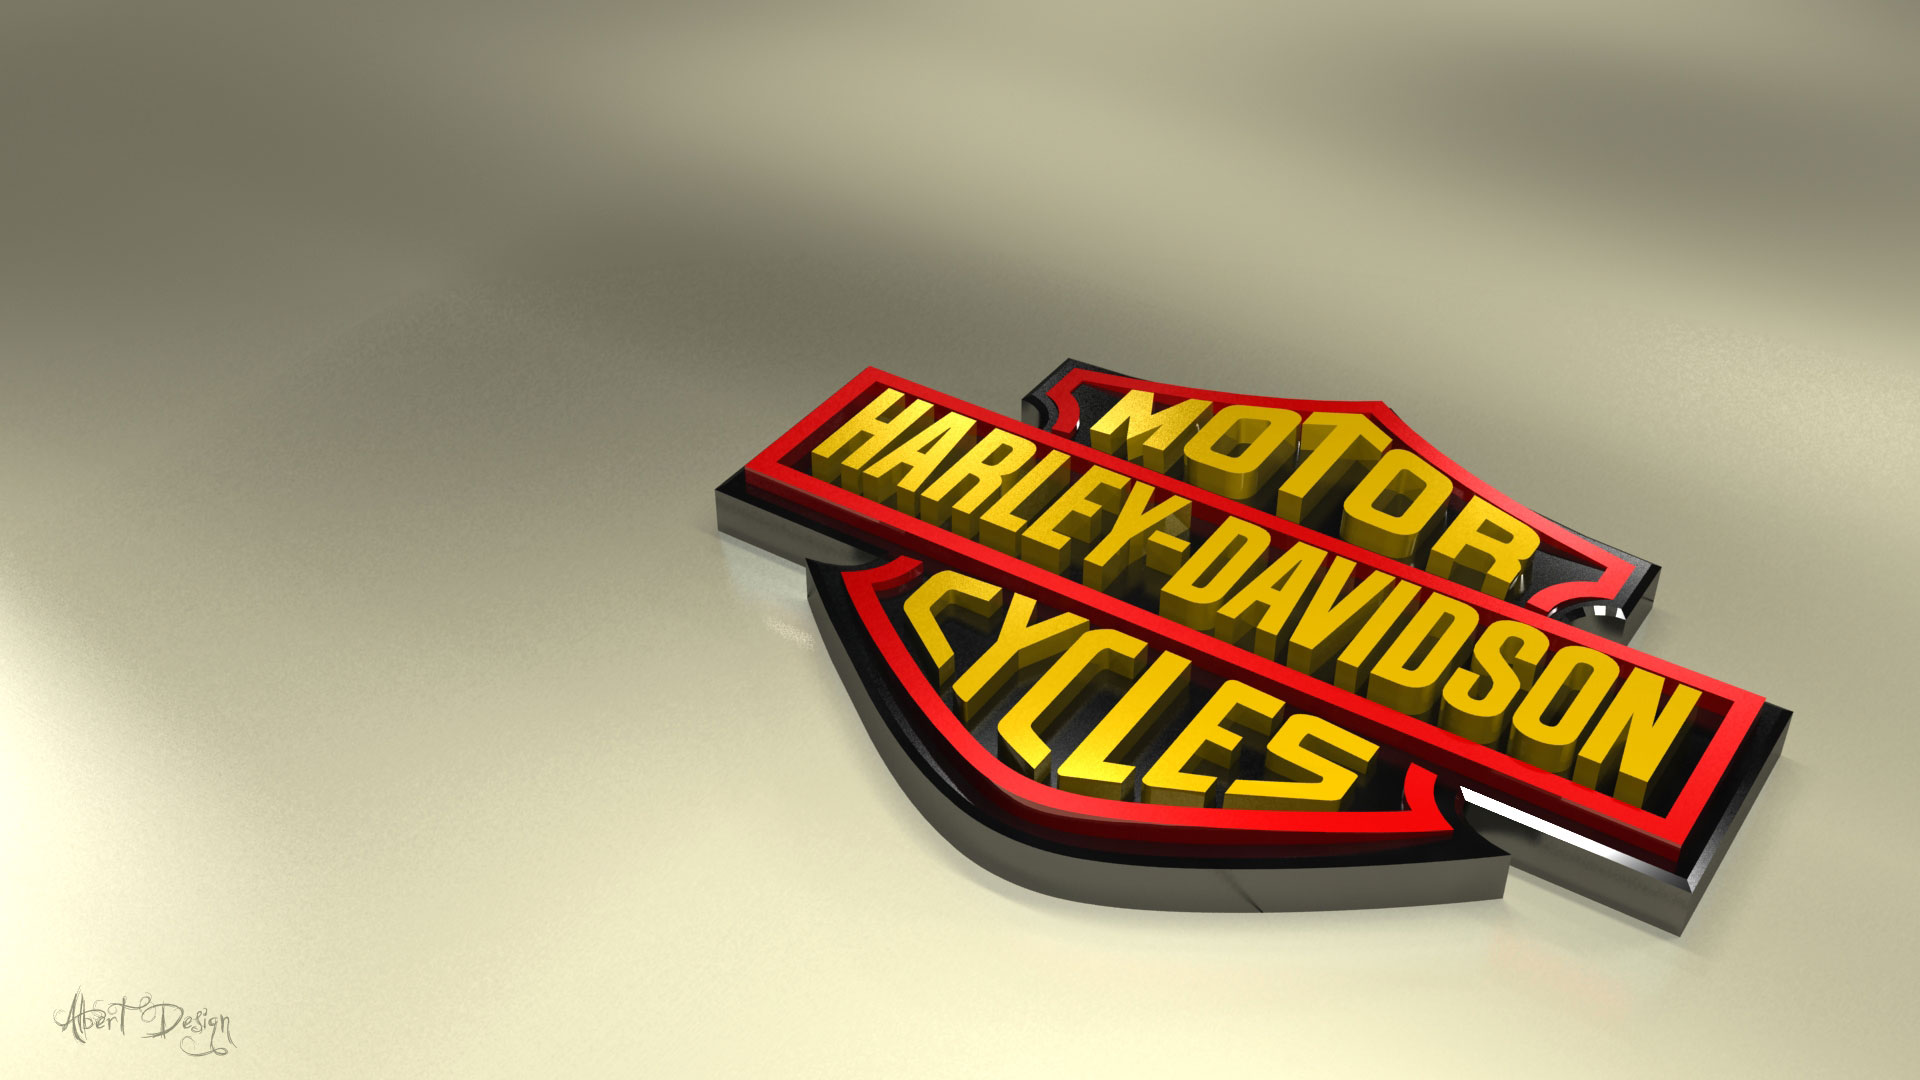 Harley Davidson Logo Wallpaper 7663 Hd Wallpapers in Logos   Imagesci 1920x1080